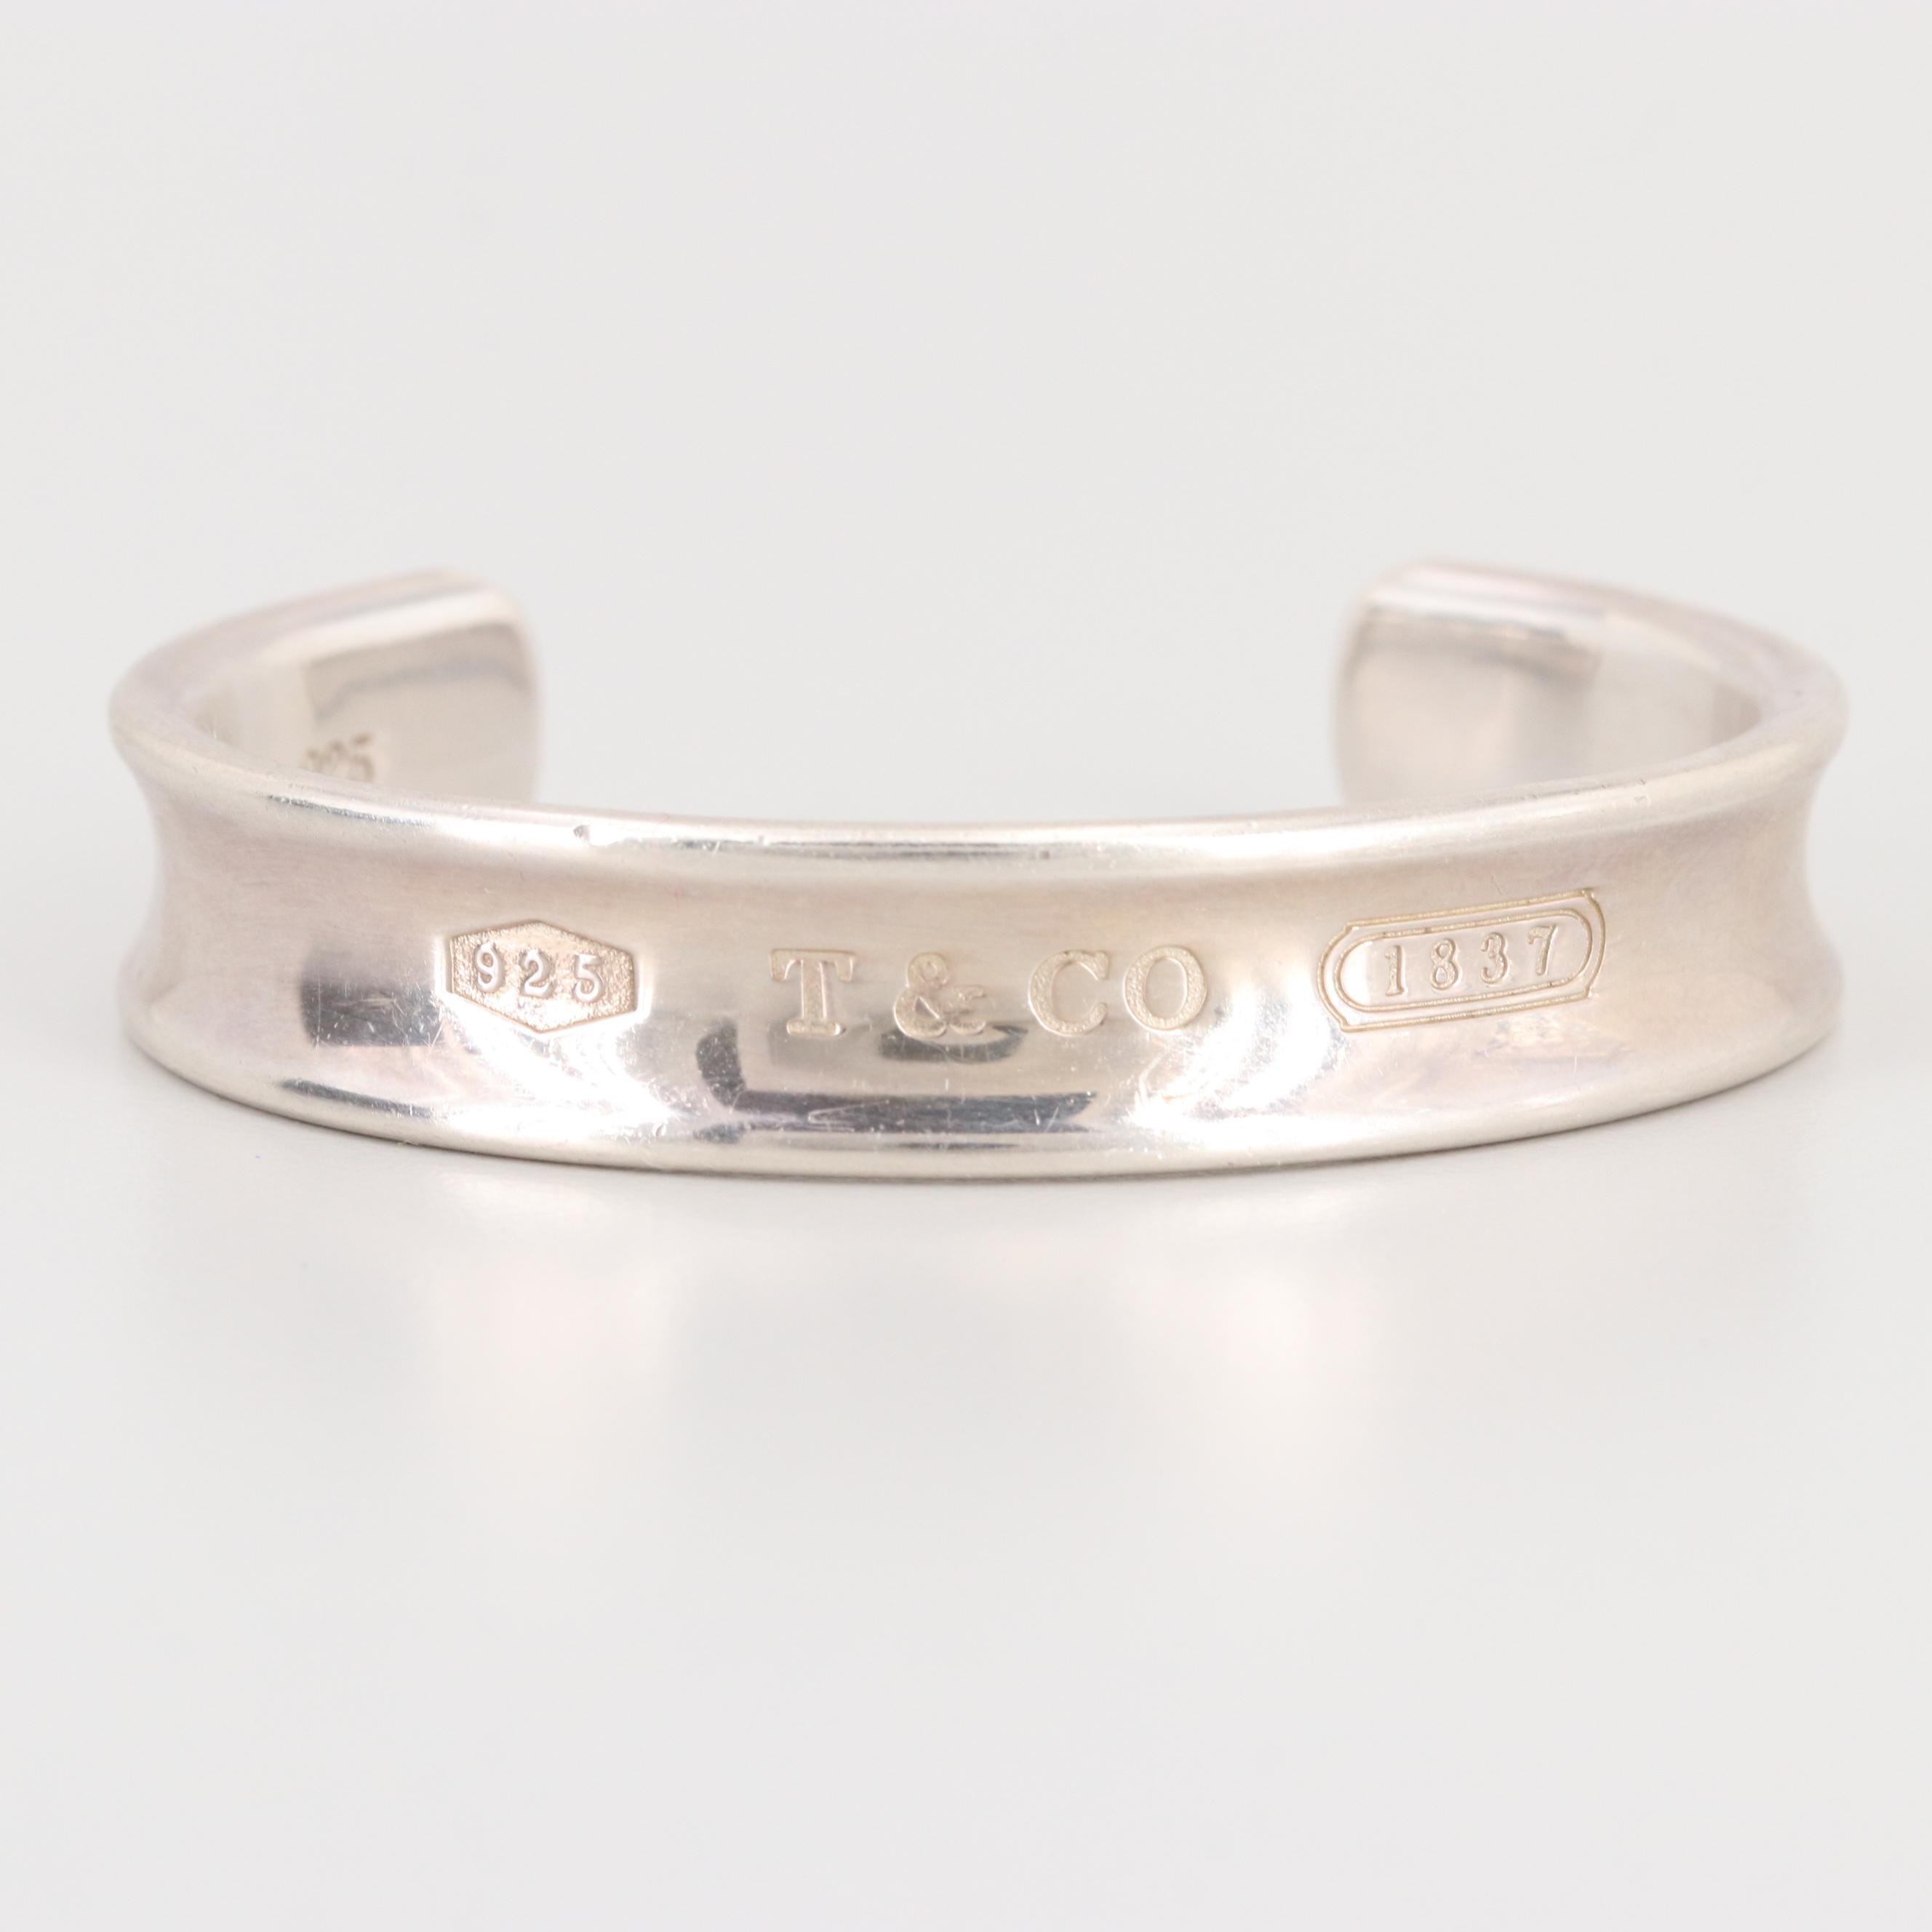 """Tiffany & Co. """"1837"""" Collection Sterling Silver Cuff Bracelet"""